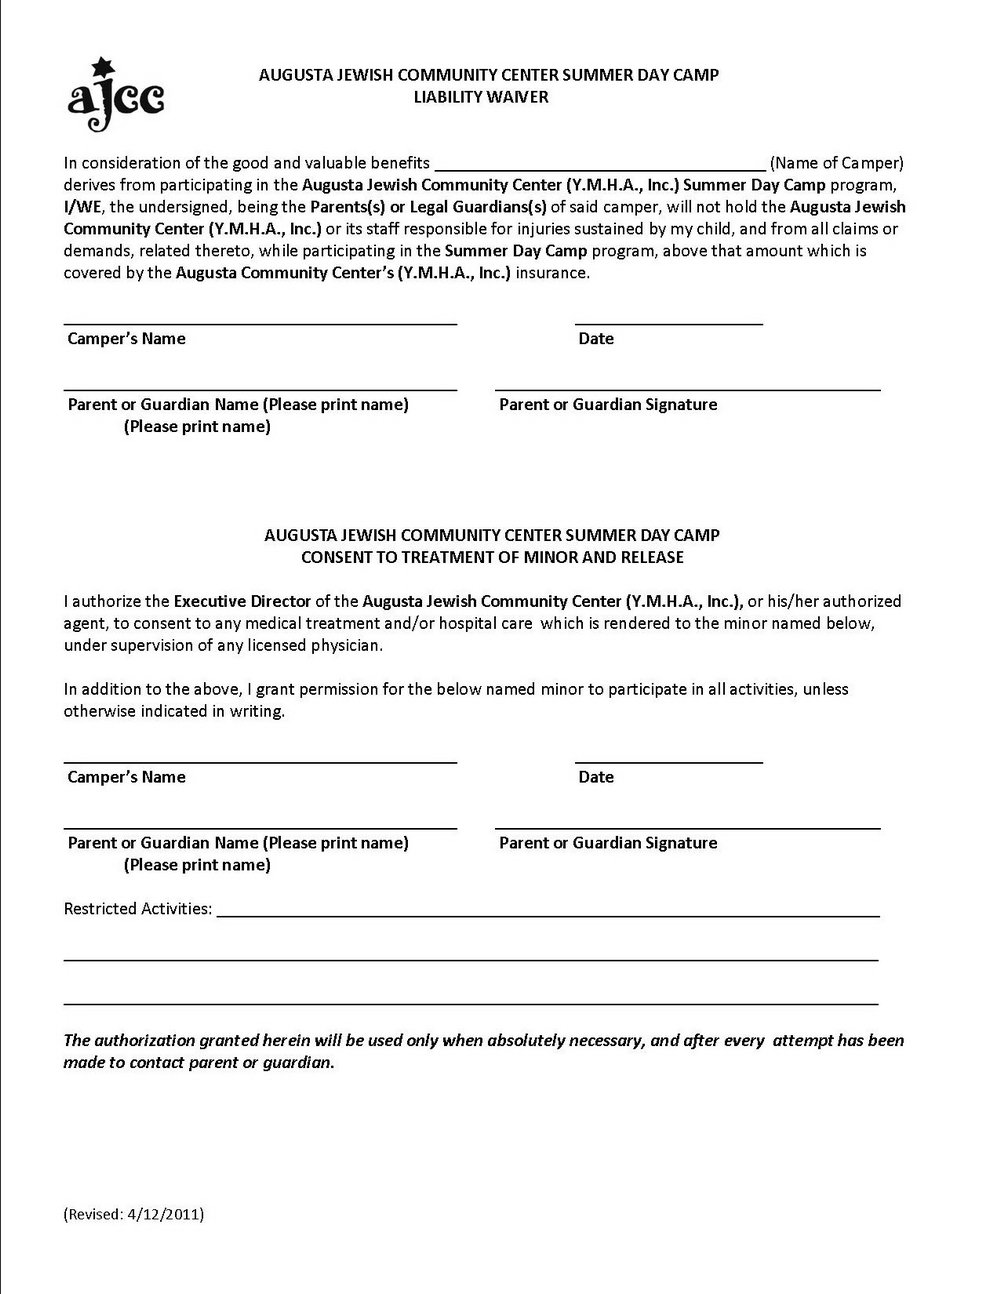 Liability Waiver Form Template Free